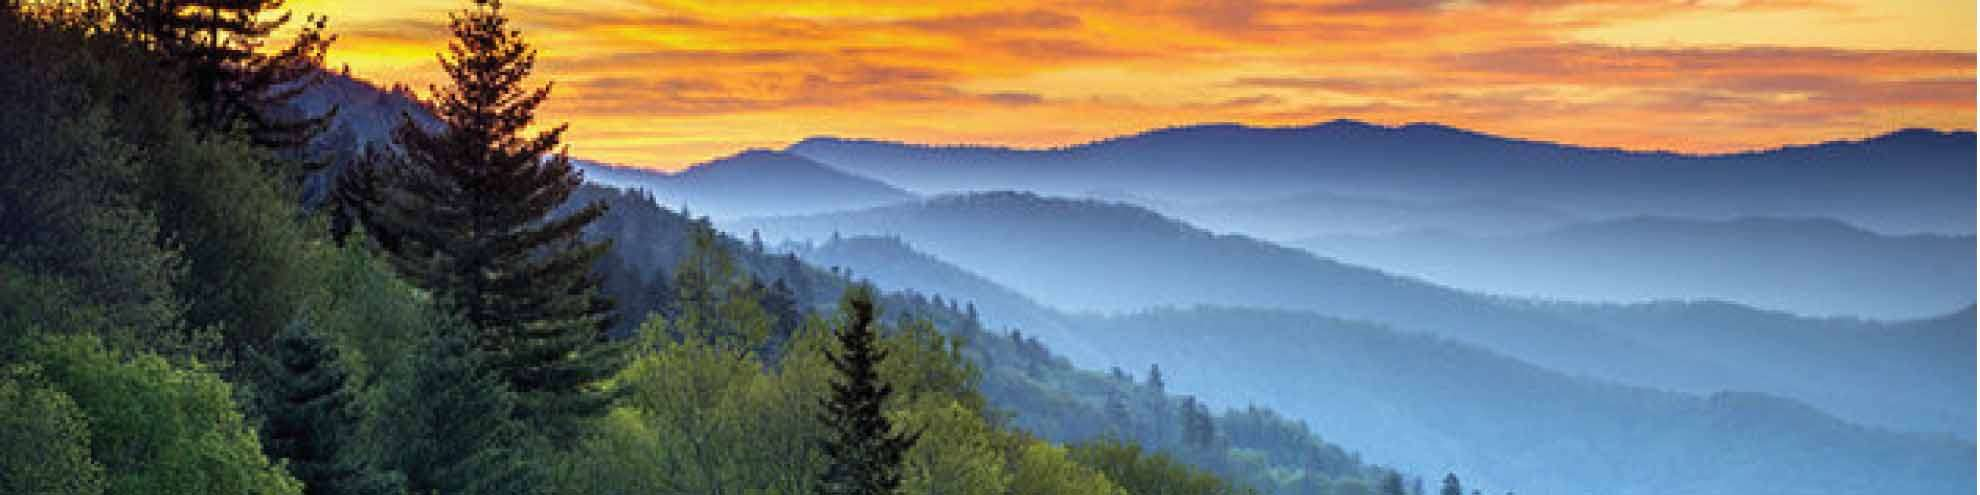 4 Ways You Can Save With Our Smoky Mountain Coupons